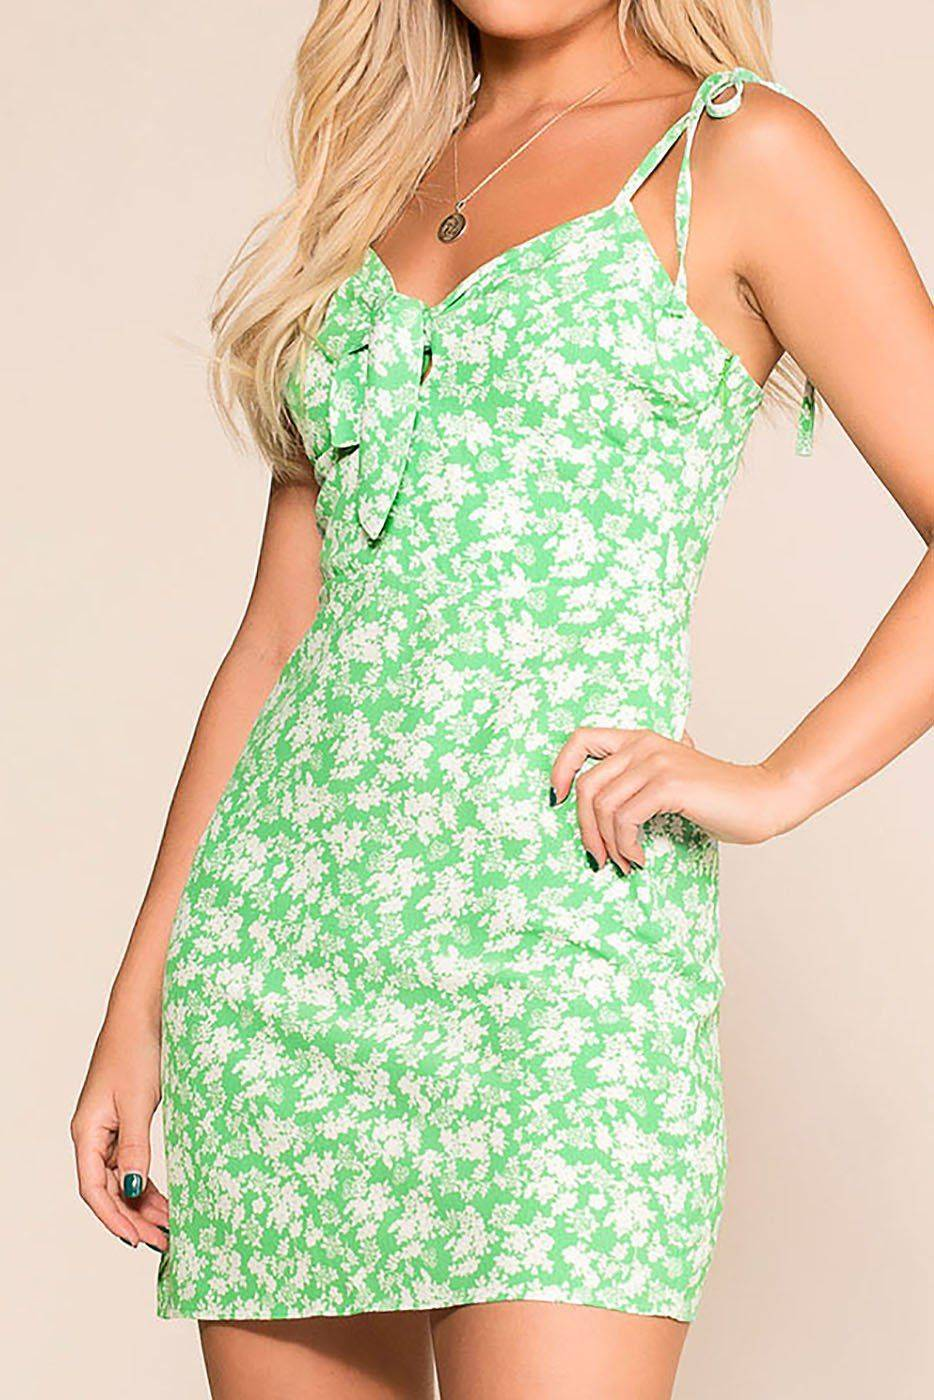 Candy In The Garden Green Floral Sun Dress  - G1195 Jade Large